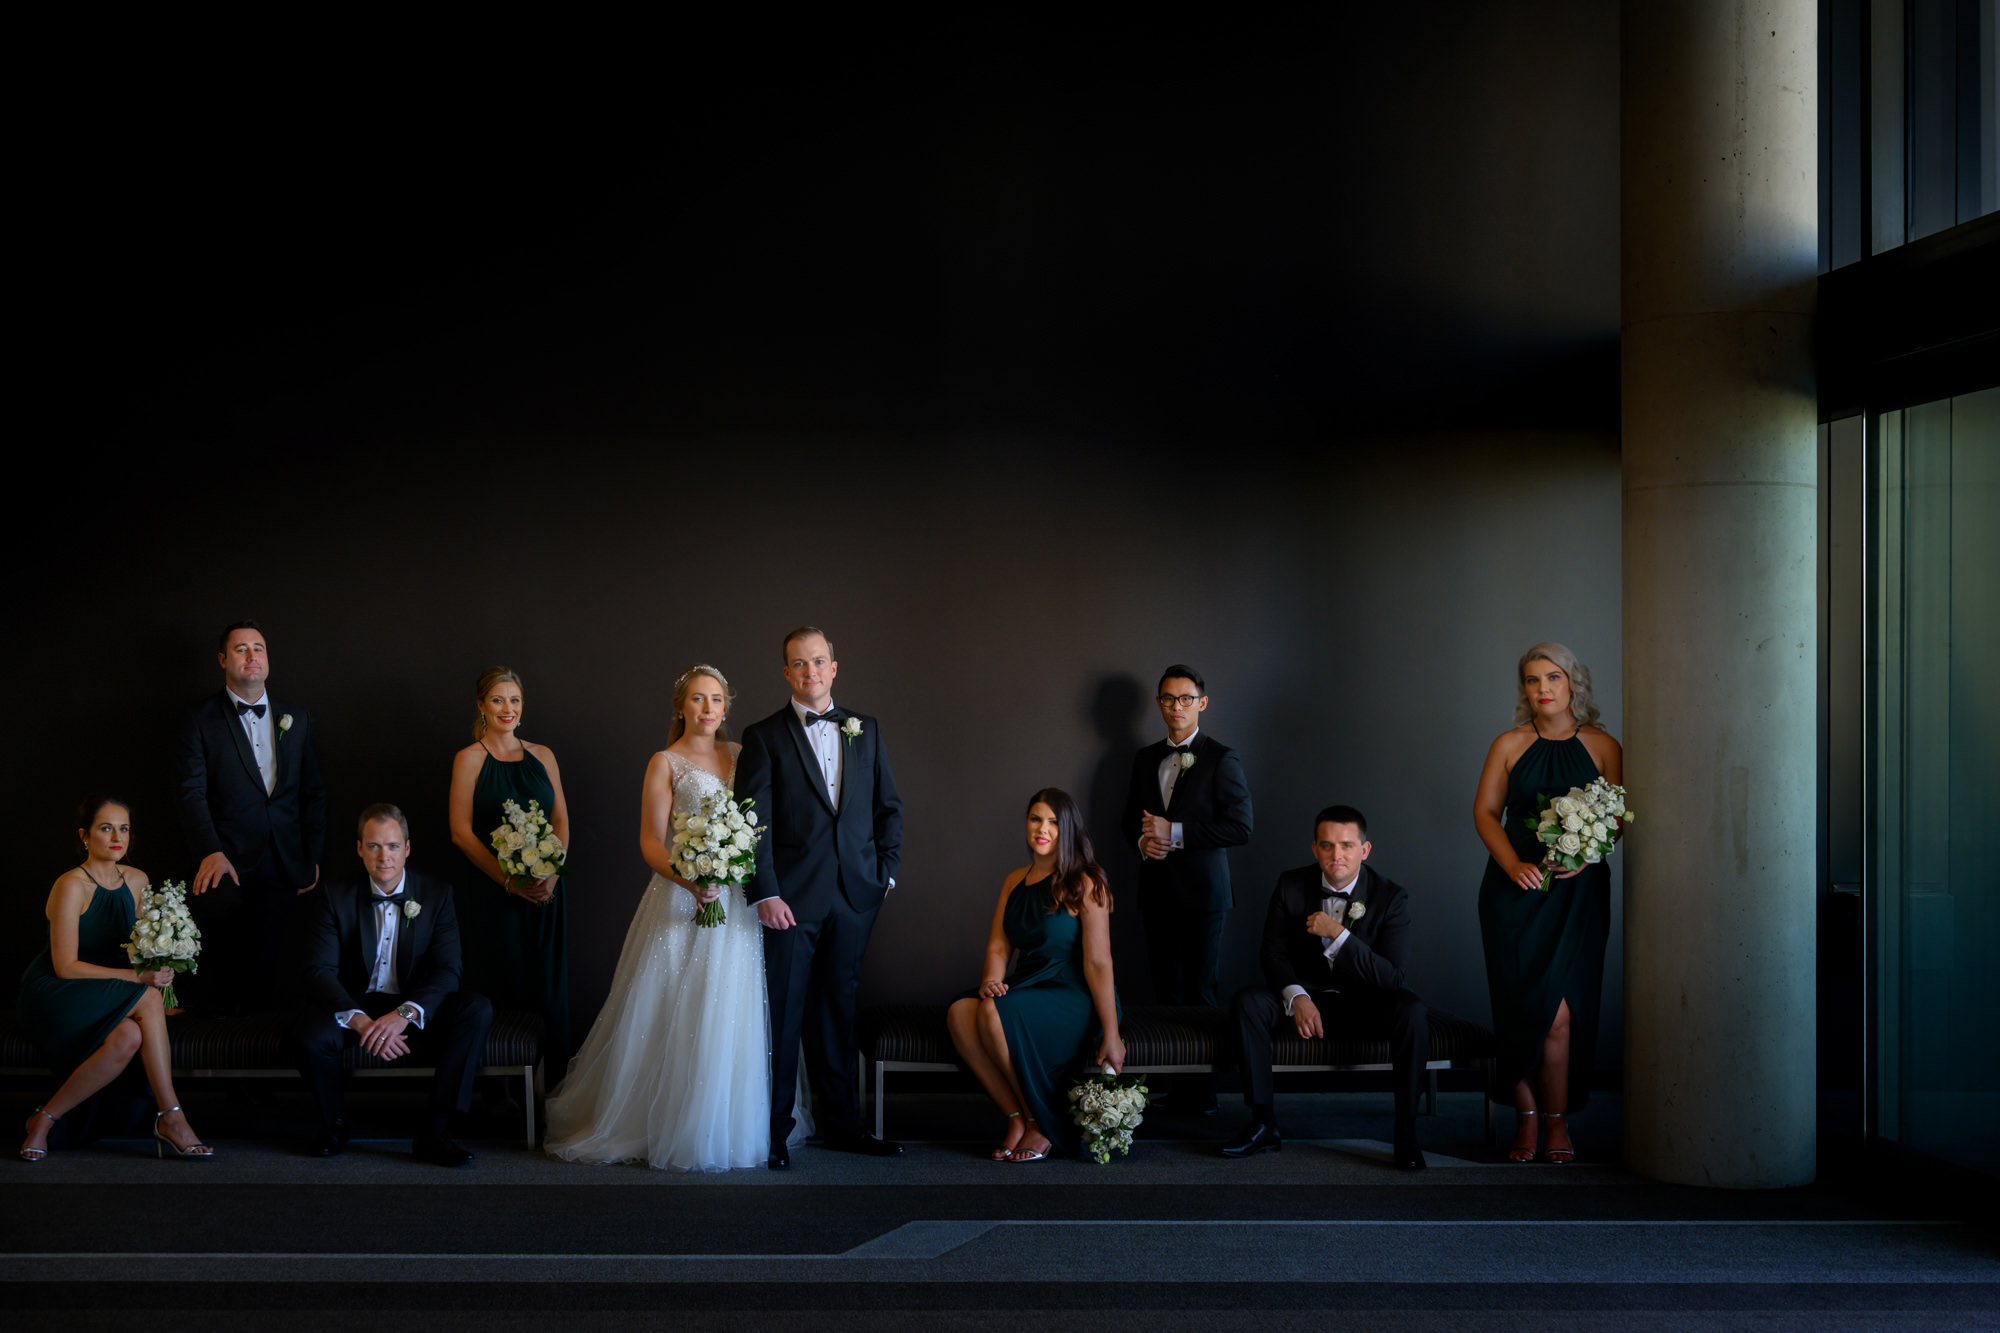 Traditional bridal party portrait with white bouquets - photo by Marcus Bell